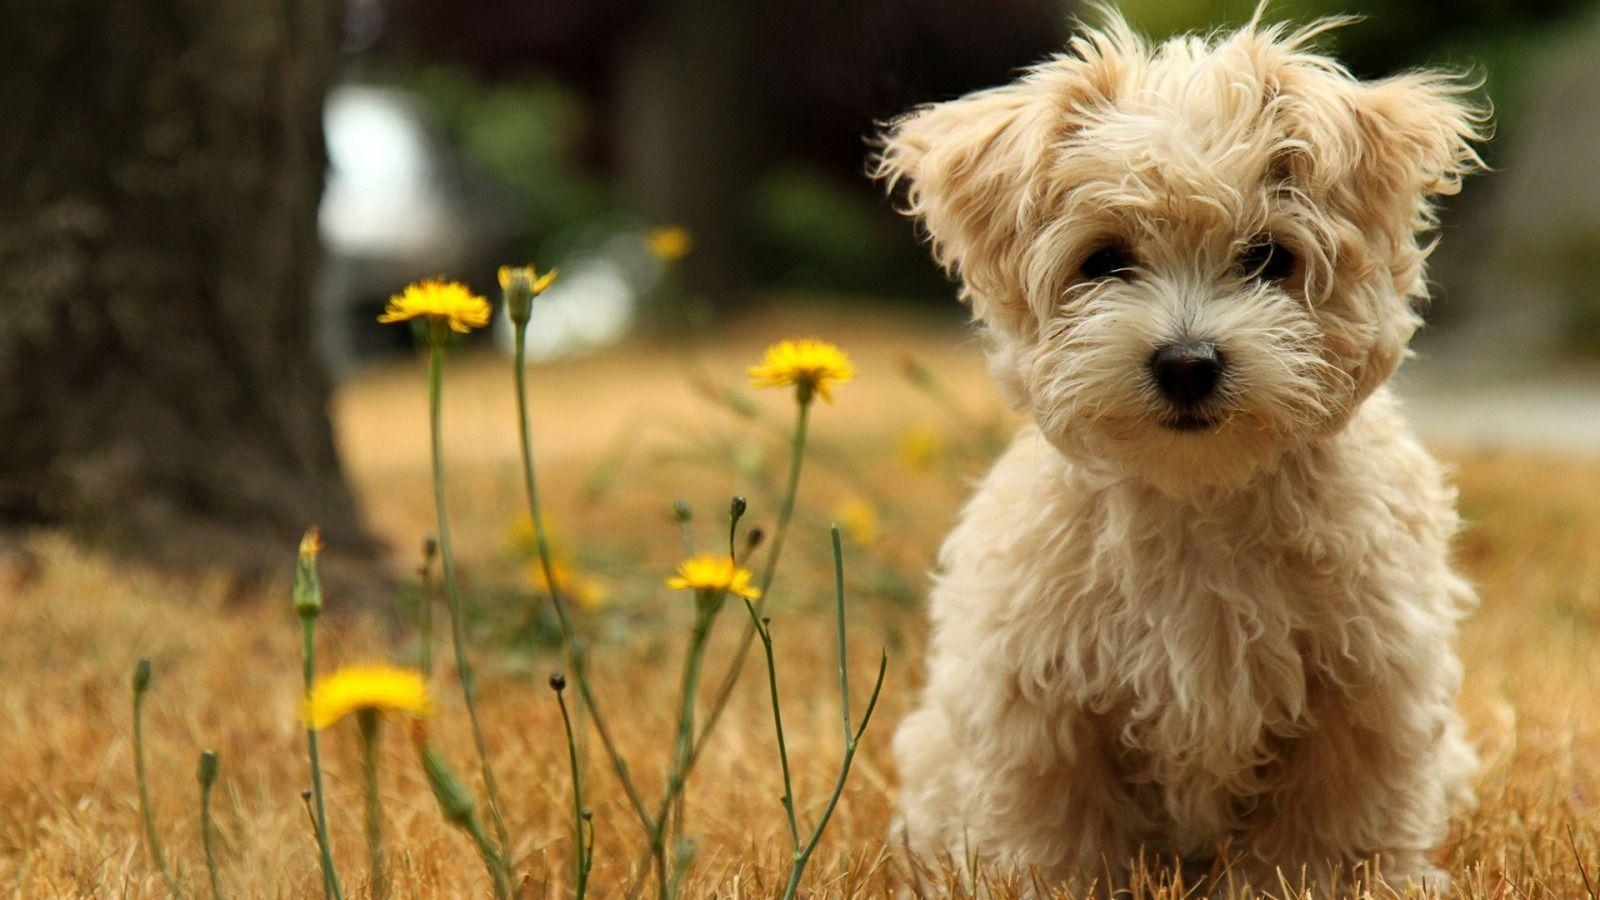 Wallpapers For > Cute Puppy Dogs Wallpapers